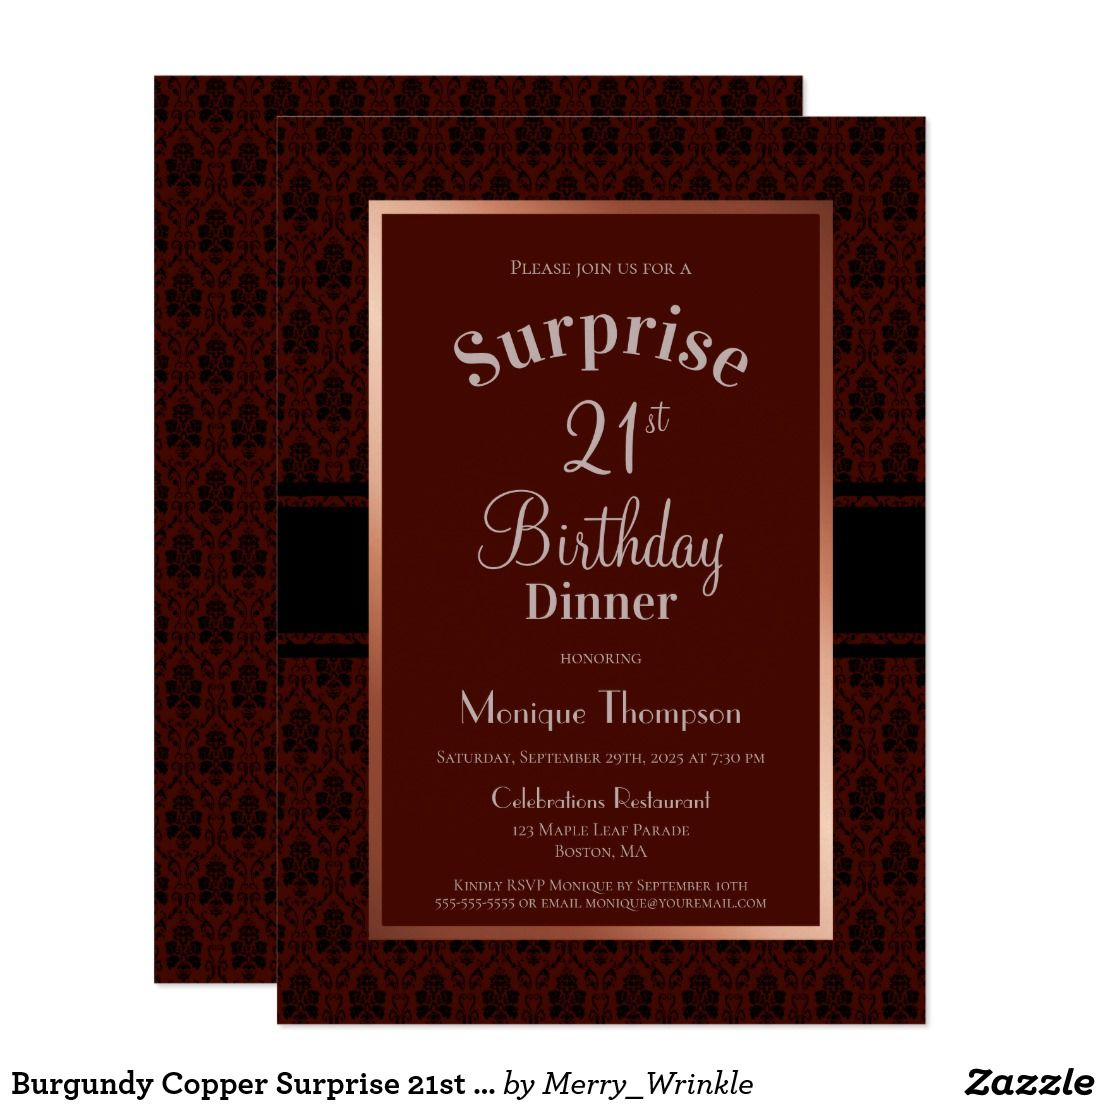 Burgundy Copper Surprise 21st Birthday Dinner Invitation